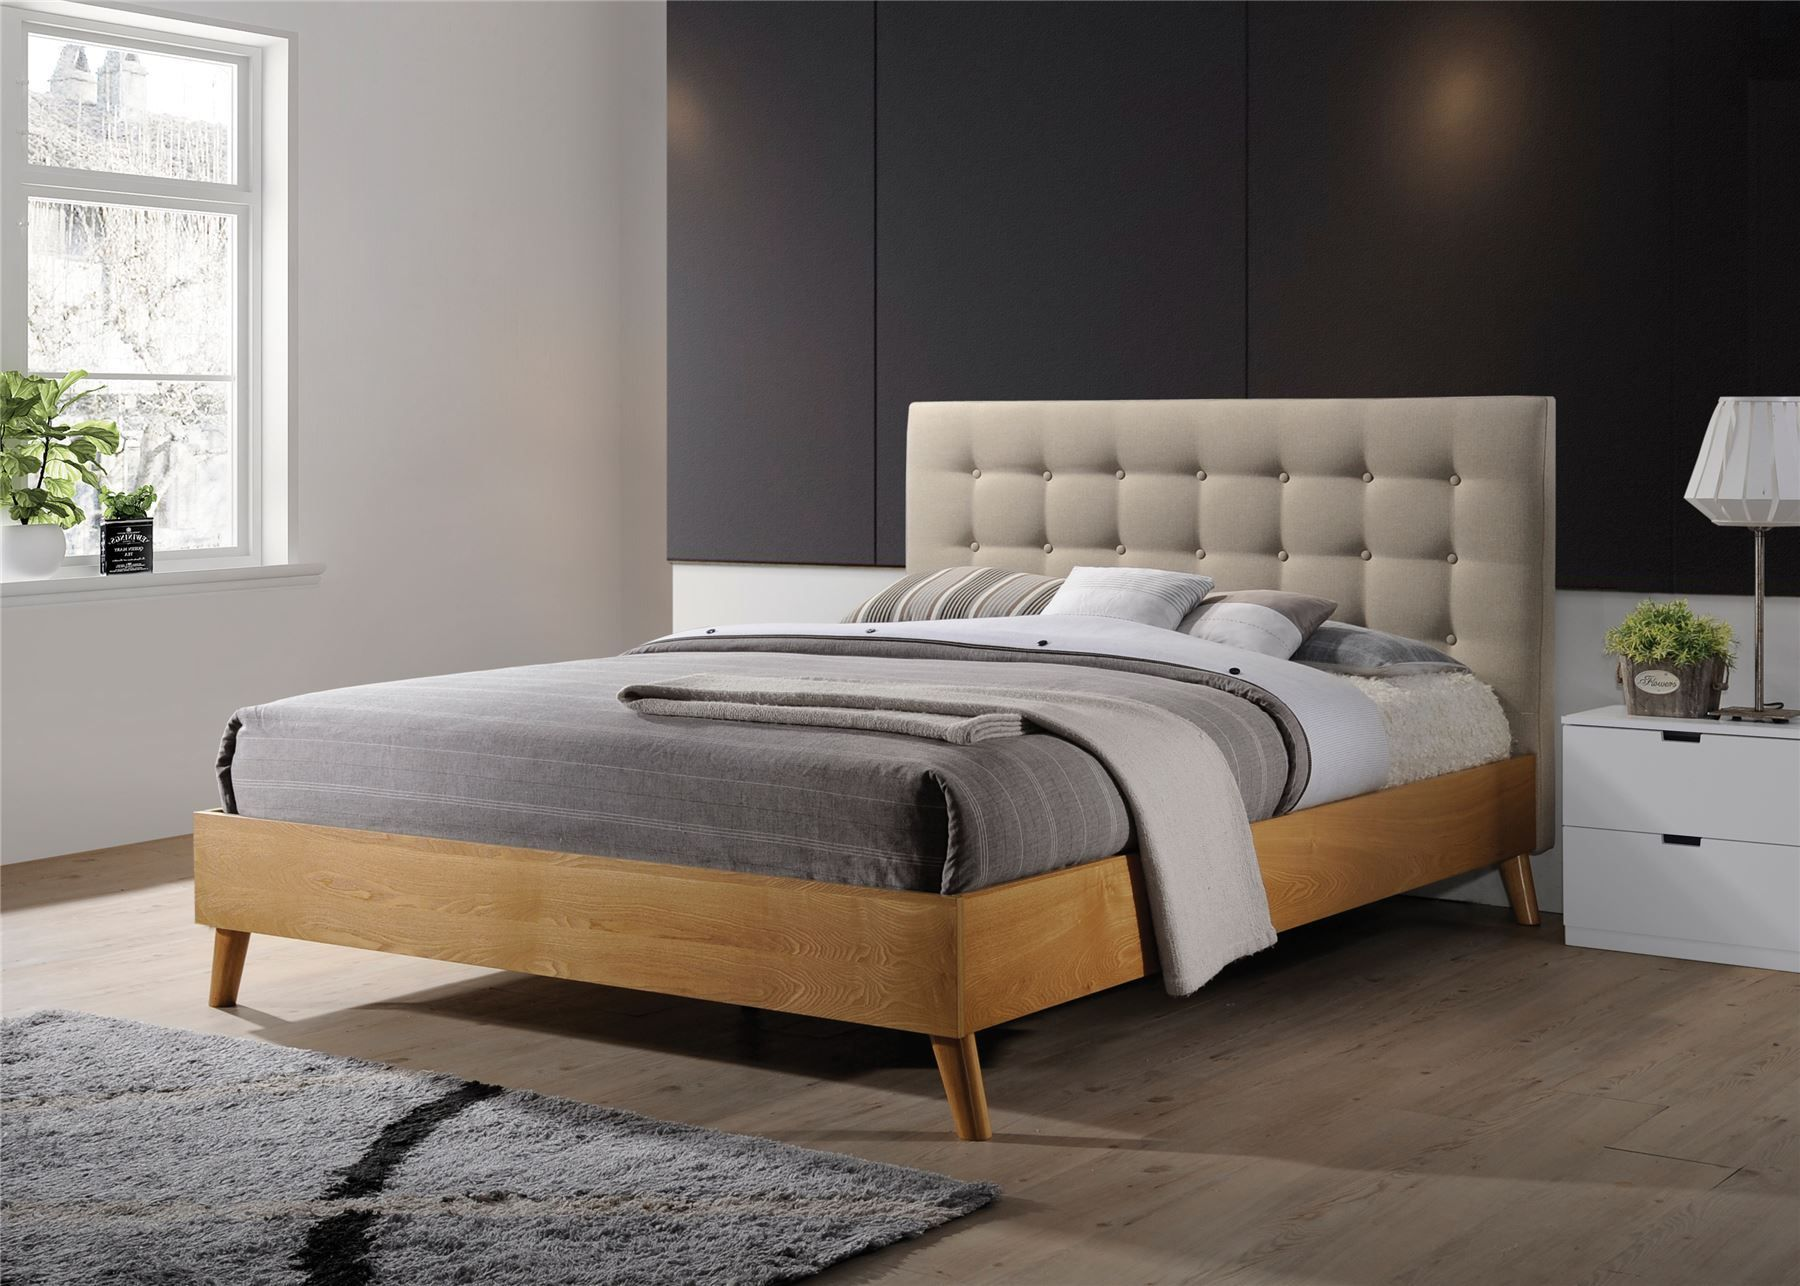 wood and upholstery bed. Gino Bed Frame Beige Fabric Oak Wood King Size Scandinavian Retro in Home  Furniture DIY Beds Mattresses Image result for modern wooden super king beds with rounded corners